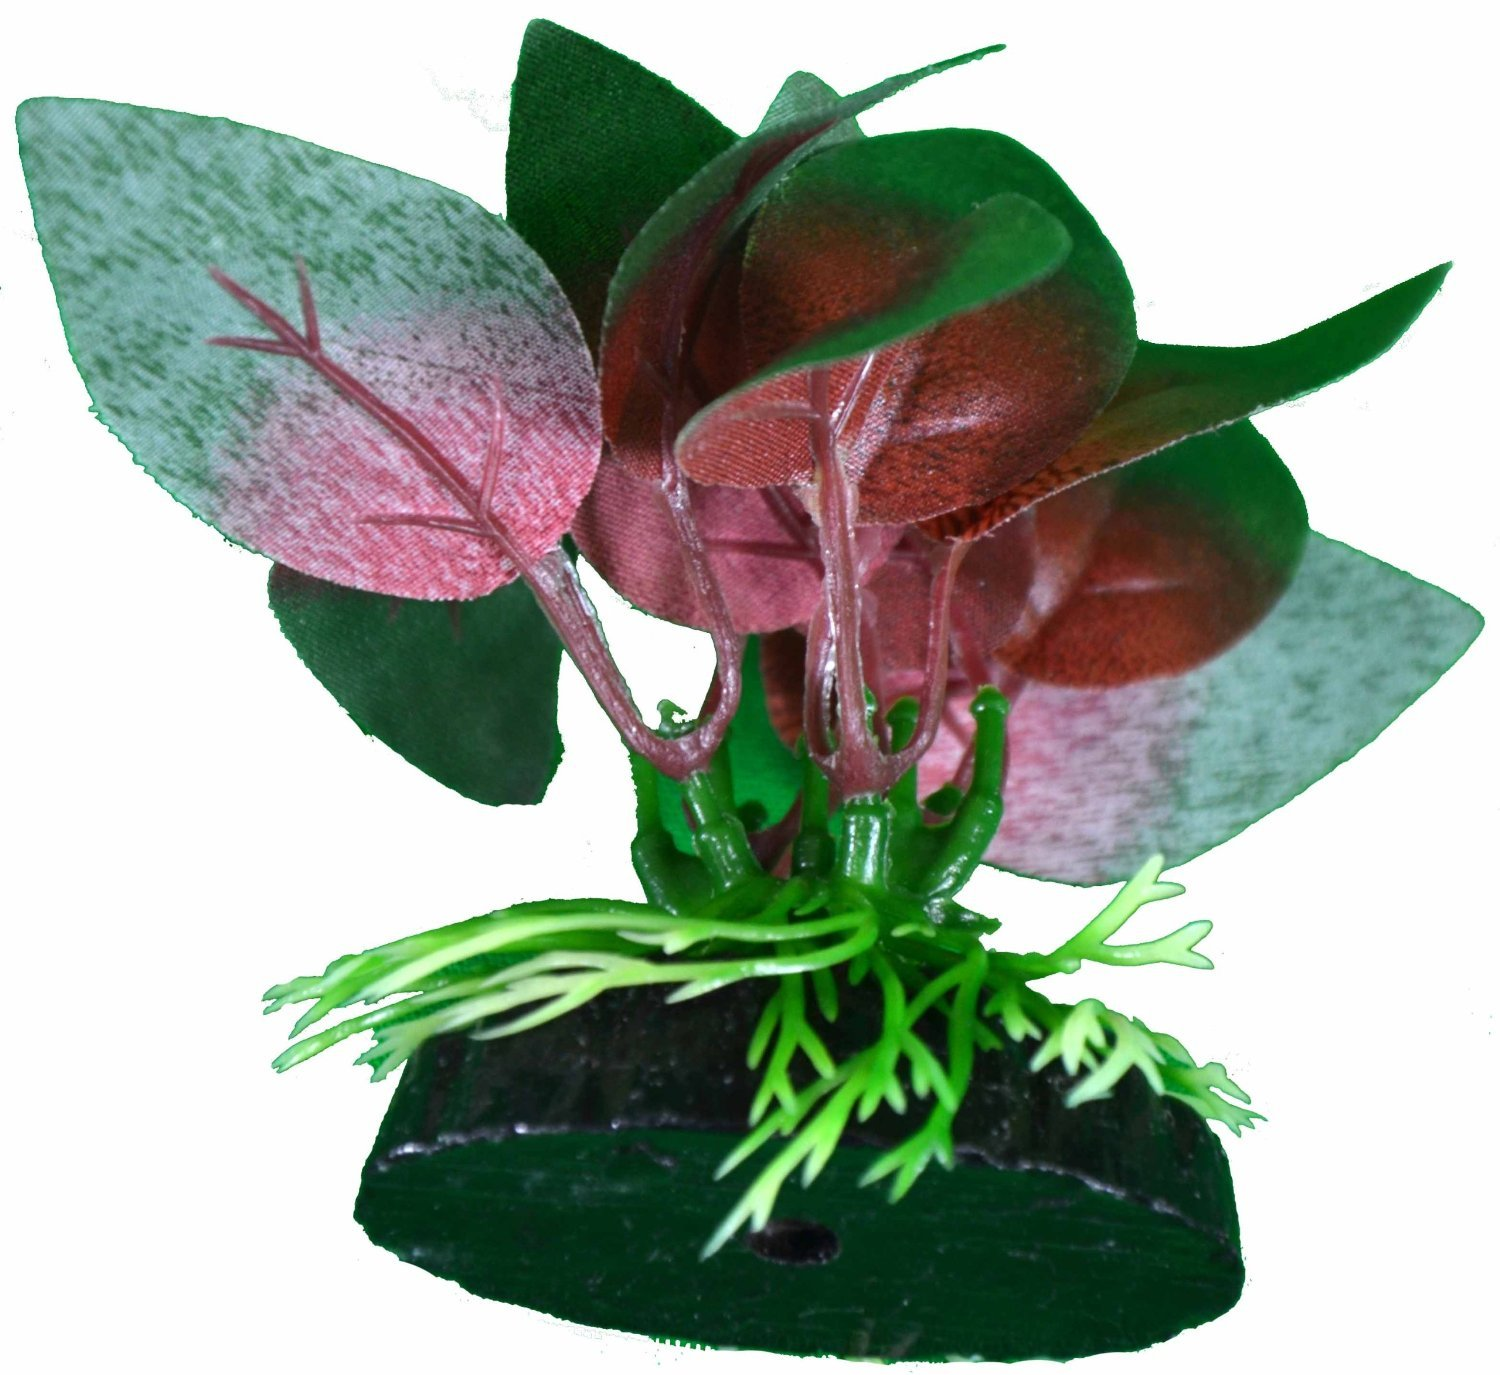 Betta Plant Red Anubias Leaf By bluee Spotted Great For Betta Fish